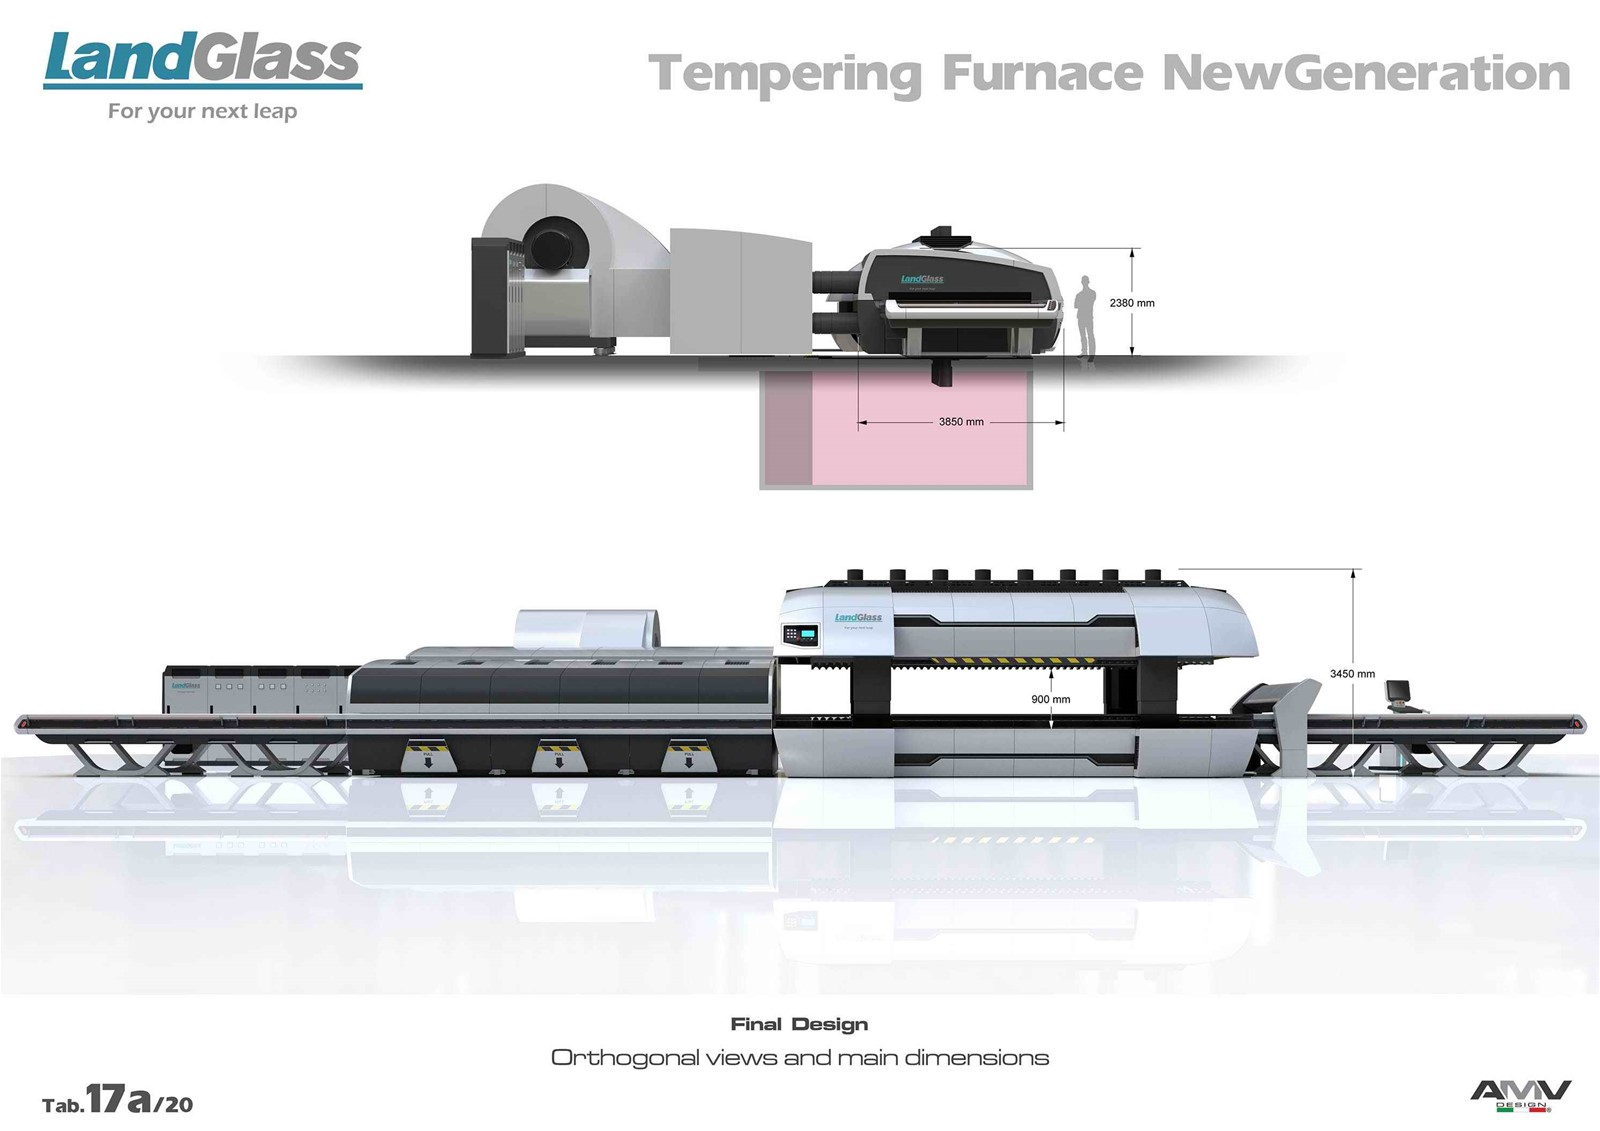 Cyclone Tempering Furnaces